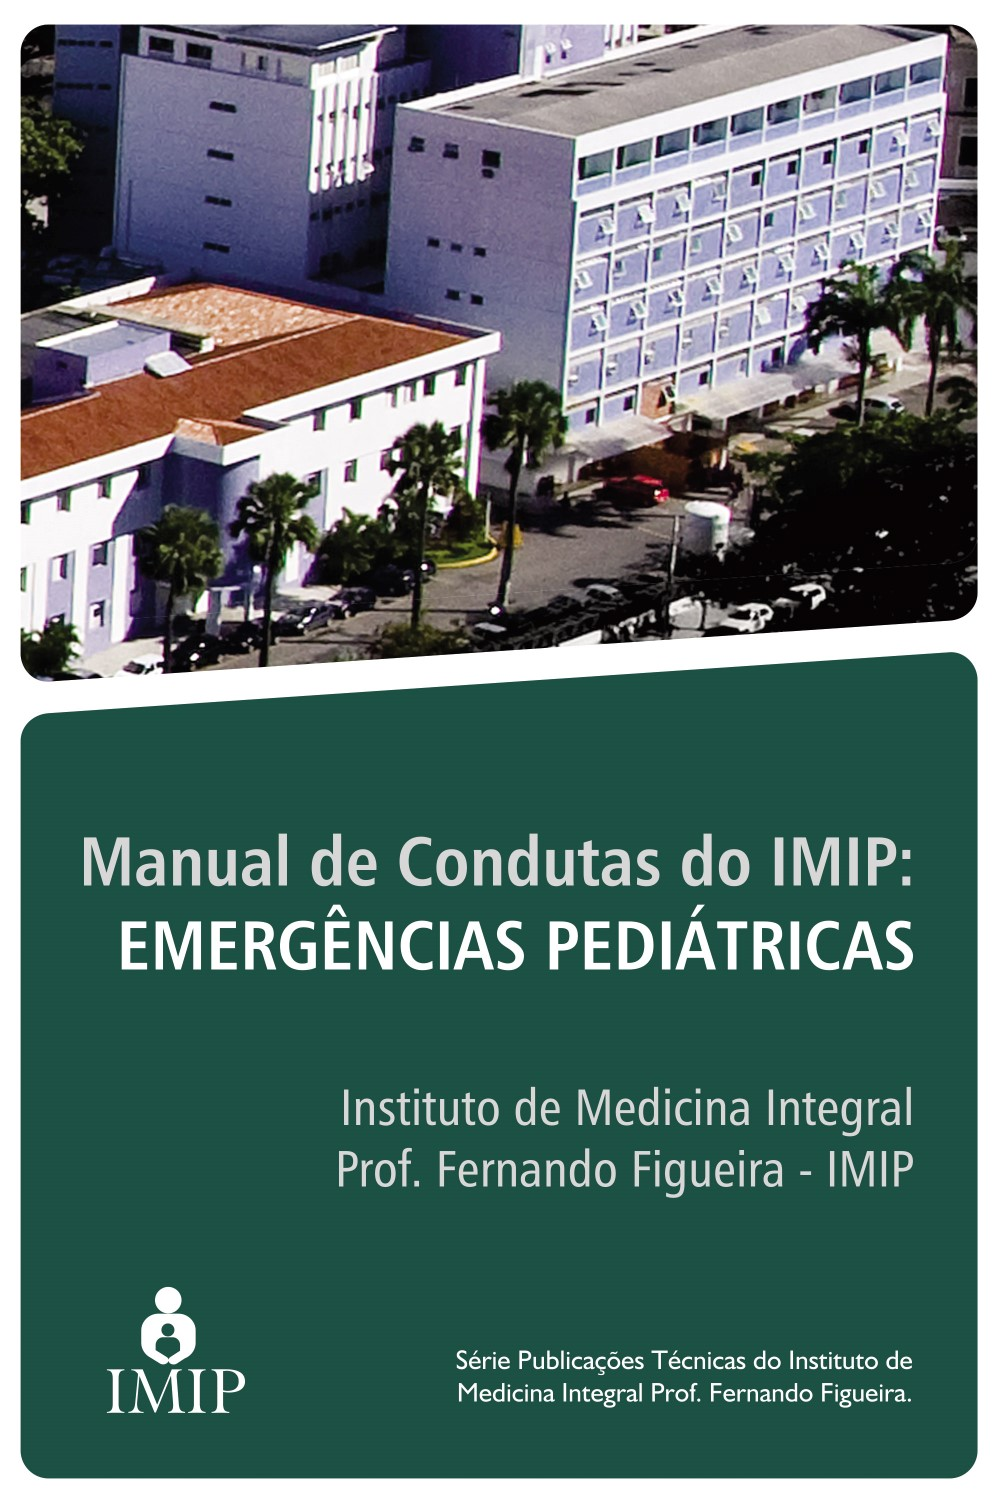 Capa do ebook Manual de condutas do IMIP Emergências Pediátricas